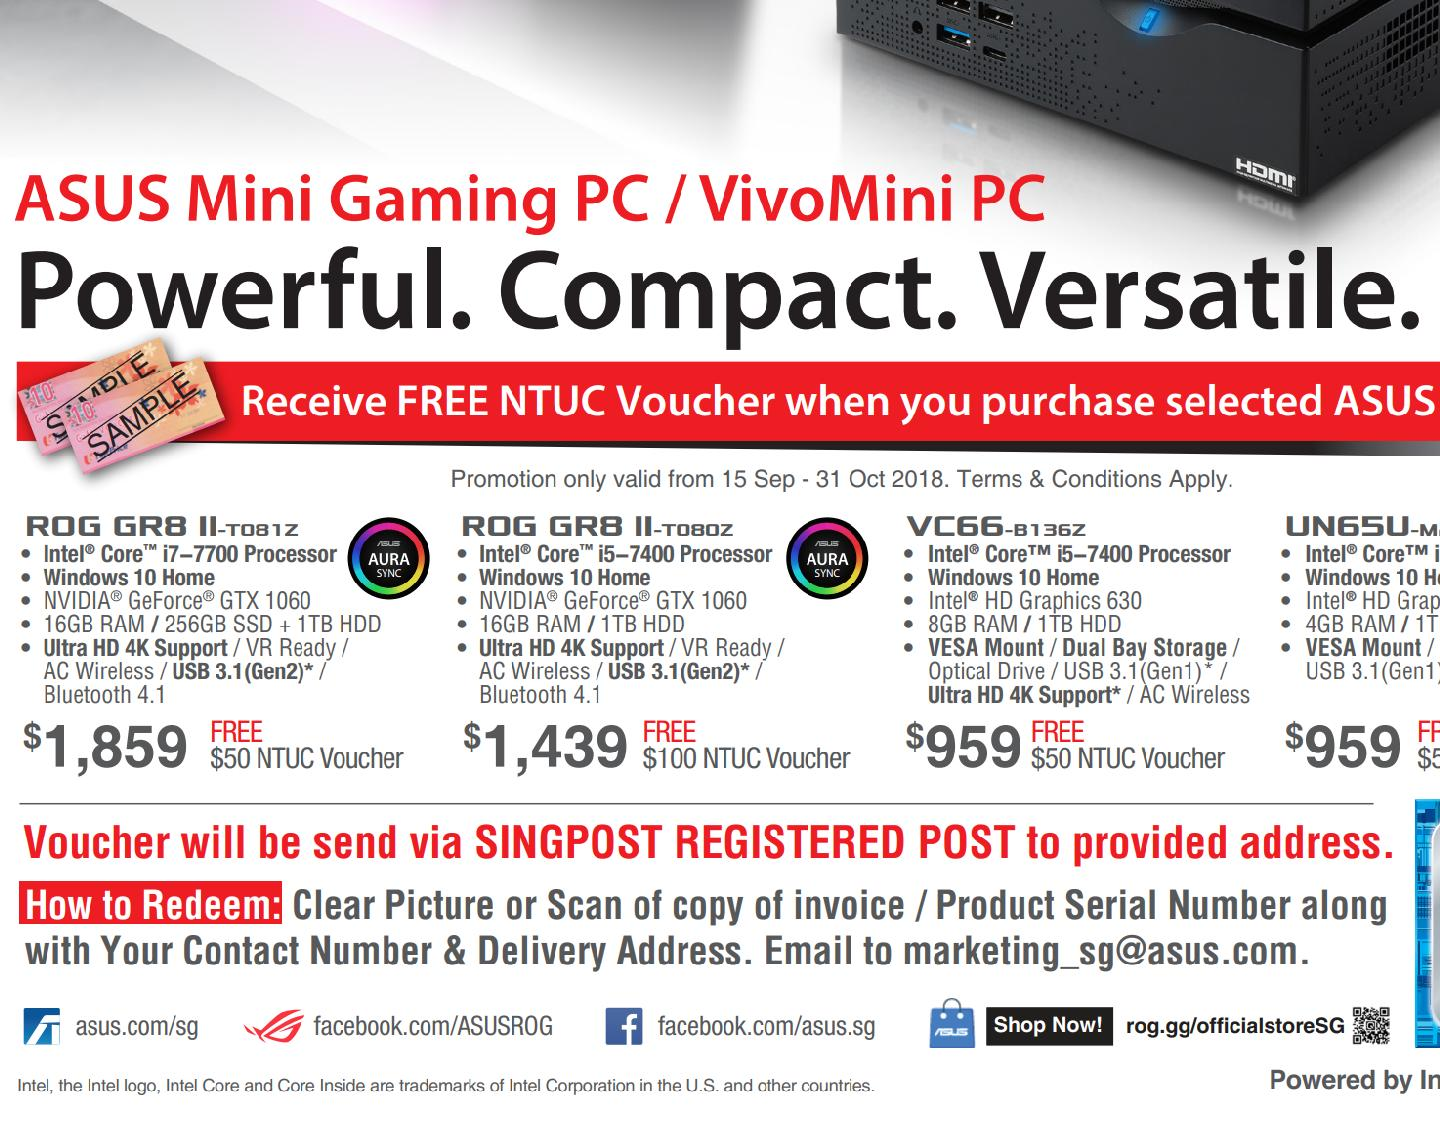 (Till 31Oct Redeem SGD50 voucher) ASUS VC66-B136Z, VivoMini PC with Windows 10 features a 7th-generation Intel® Core™ i5-7400 processor (3.50GHz,...